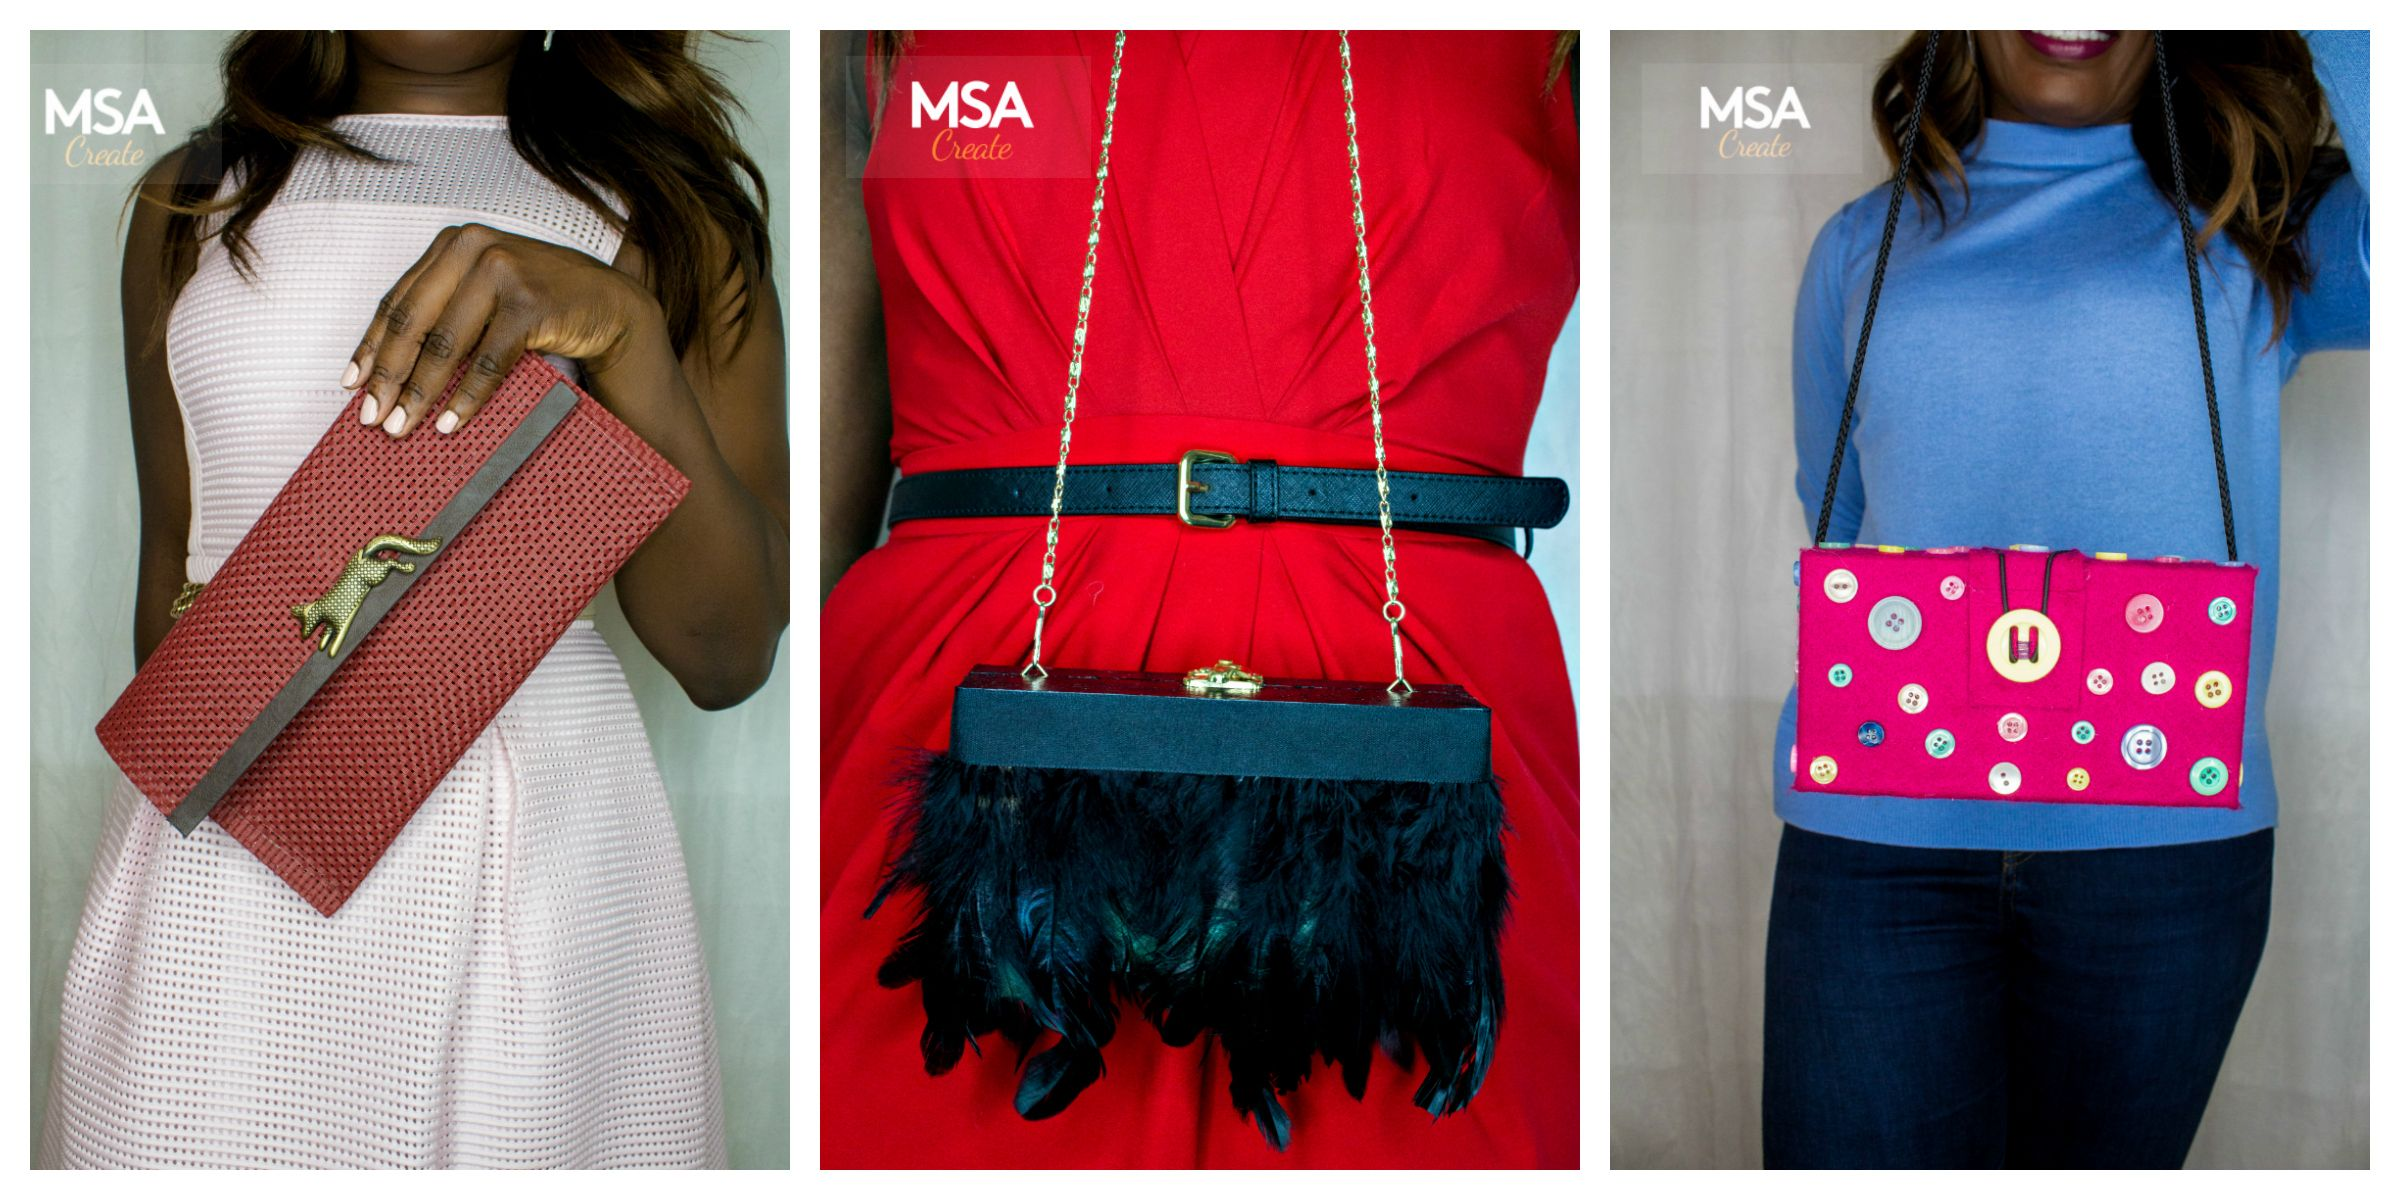 MSA Be InspiredDIY CLUTCH BAGS